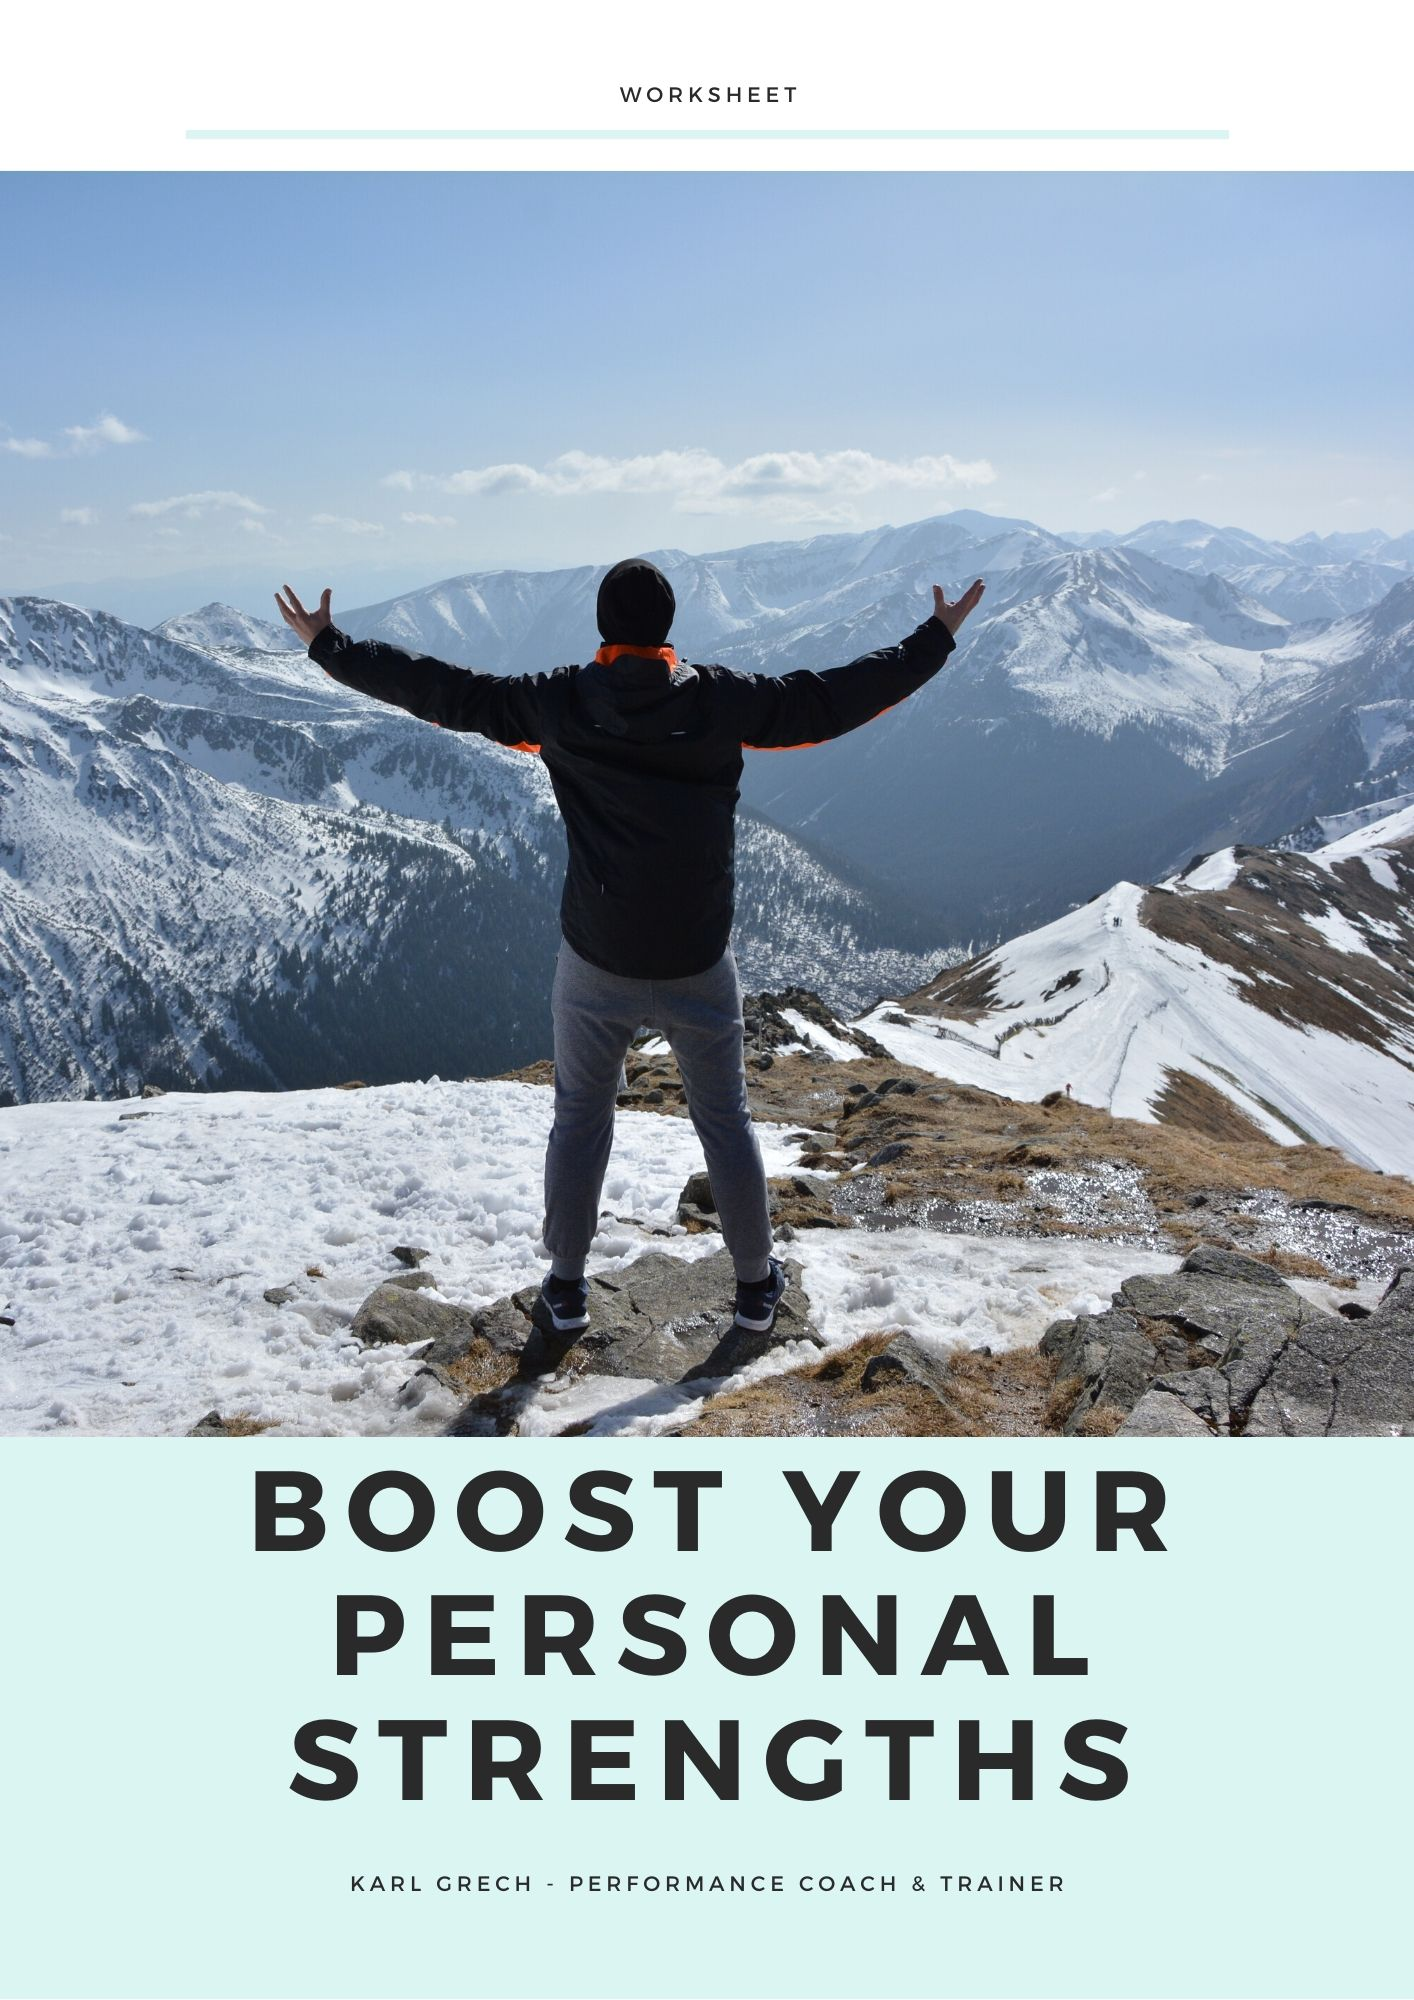 Boost Your Personal Strengths Freebie Worksheet